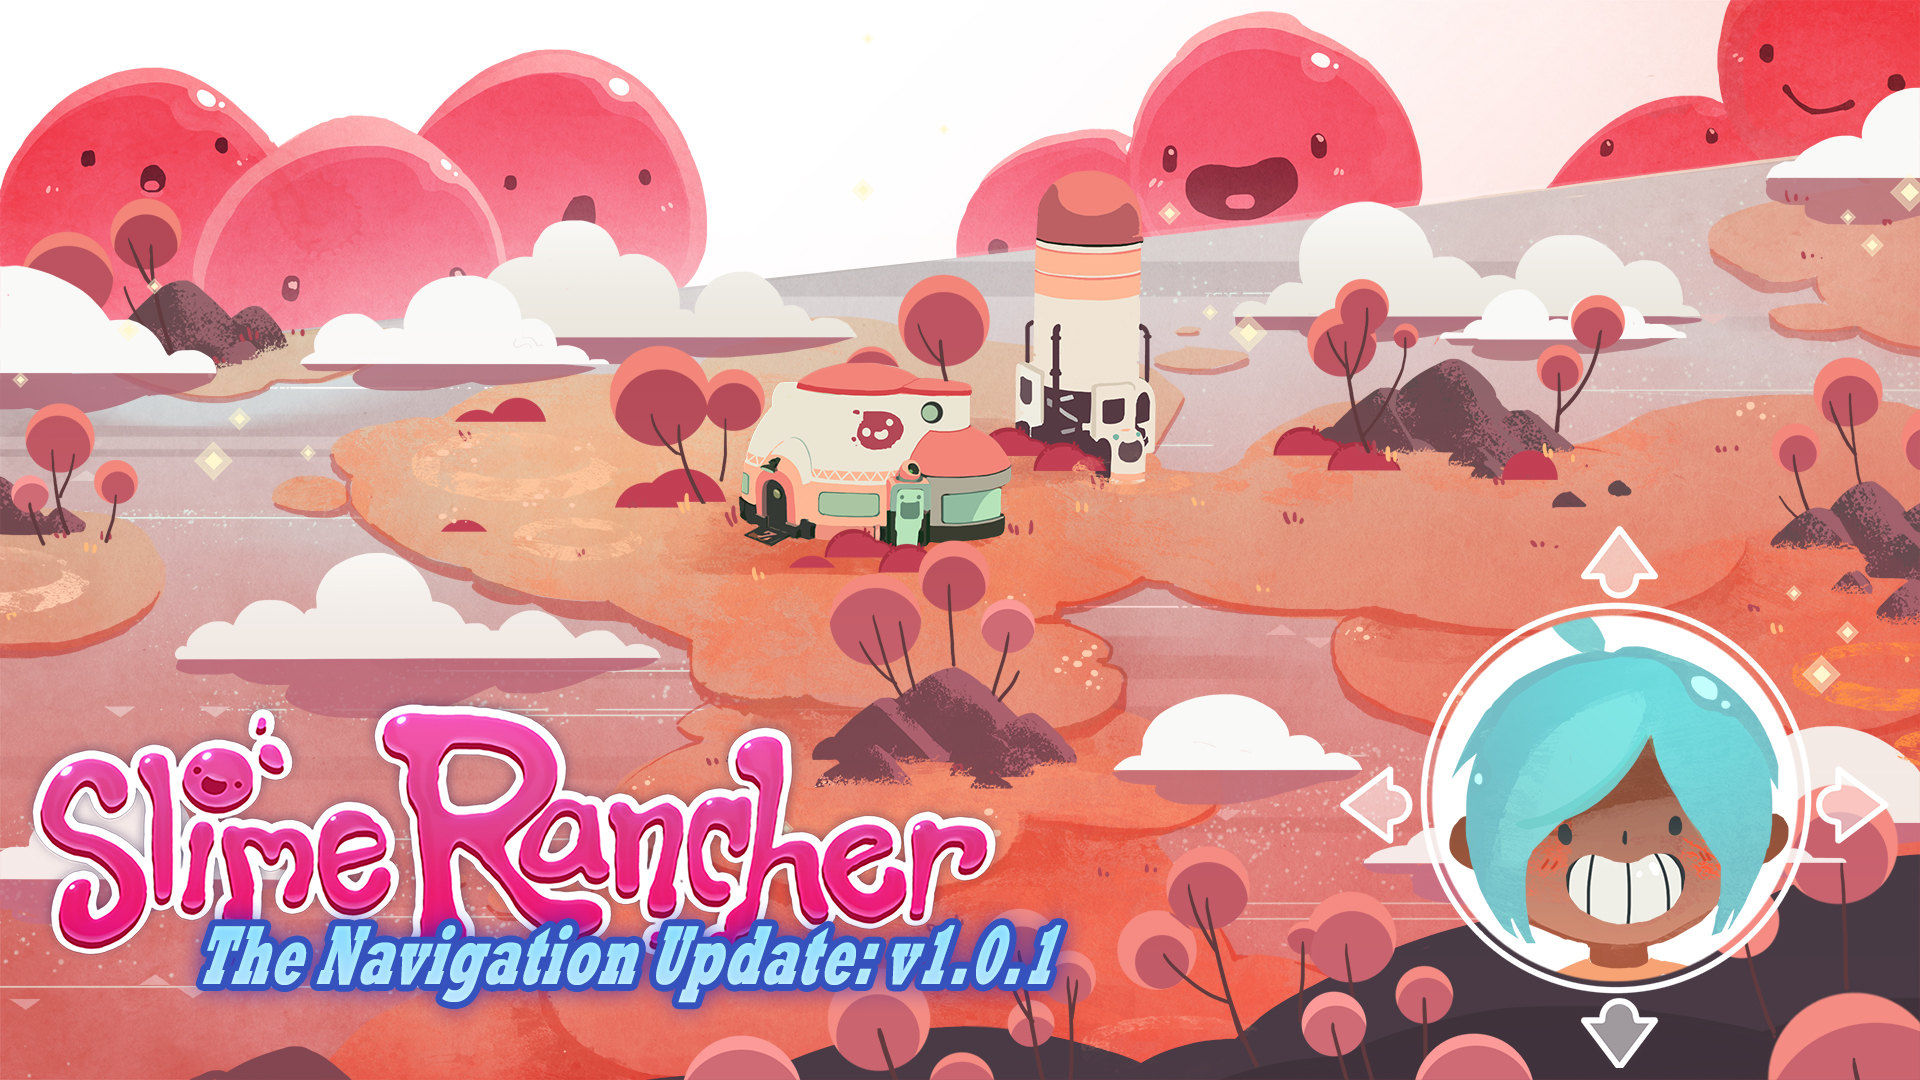 Slime Rancher :: Slime Rancher v1 0 1 Now Available!